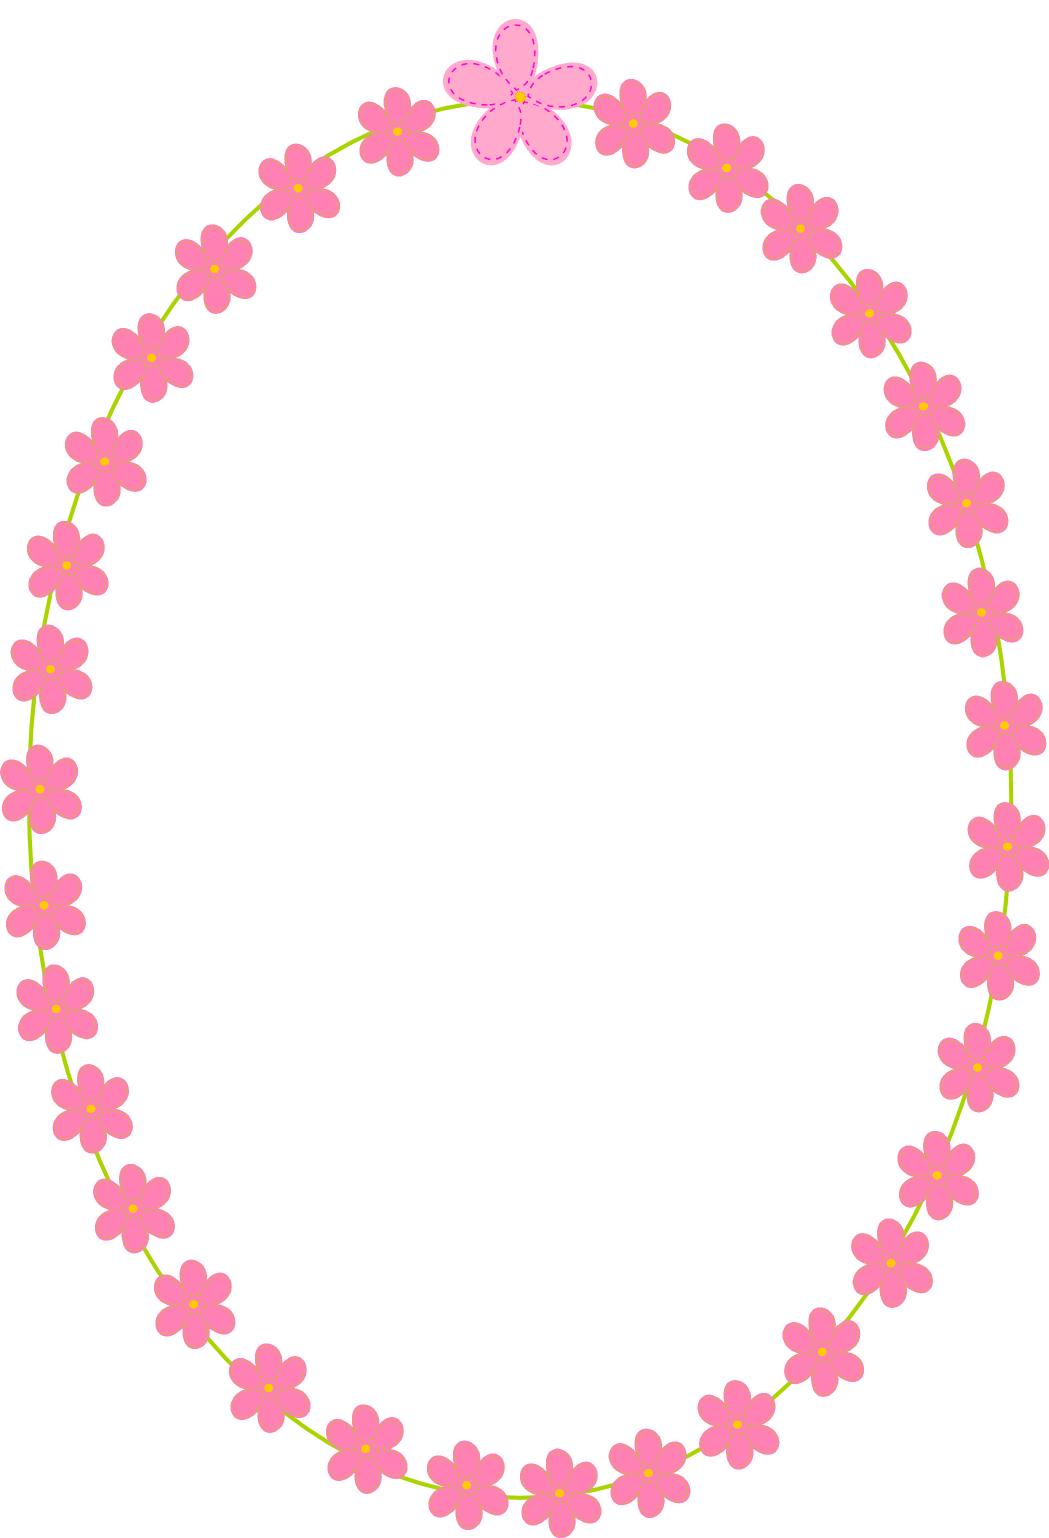 Vanilla clipart bunga  Frames And Flower Scrapbooking